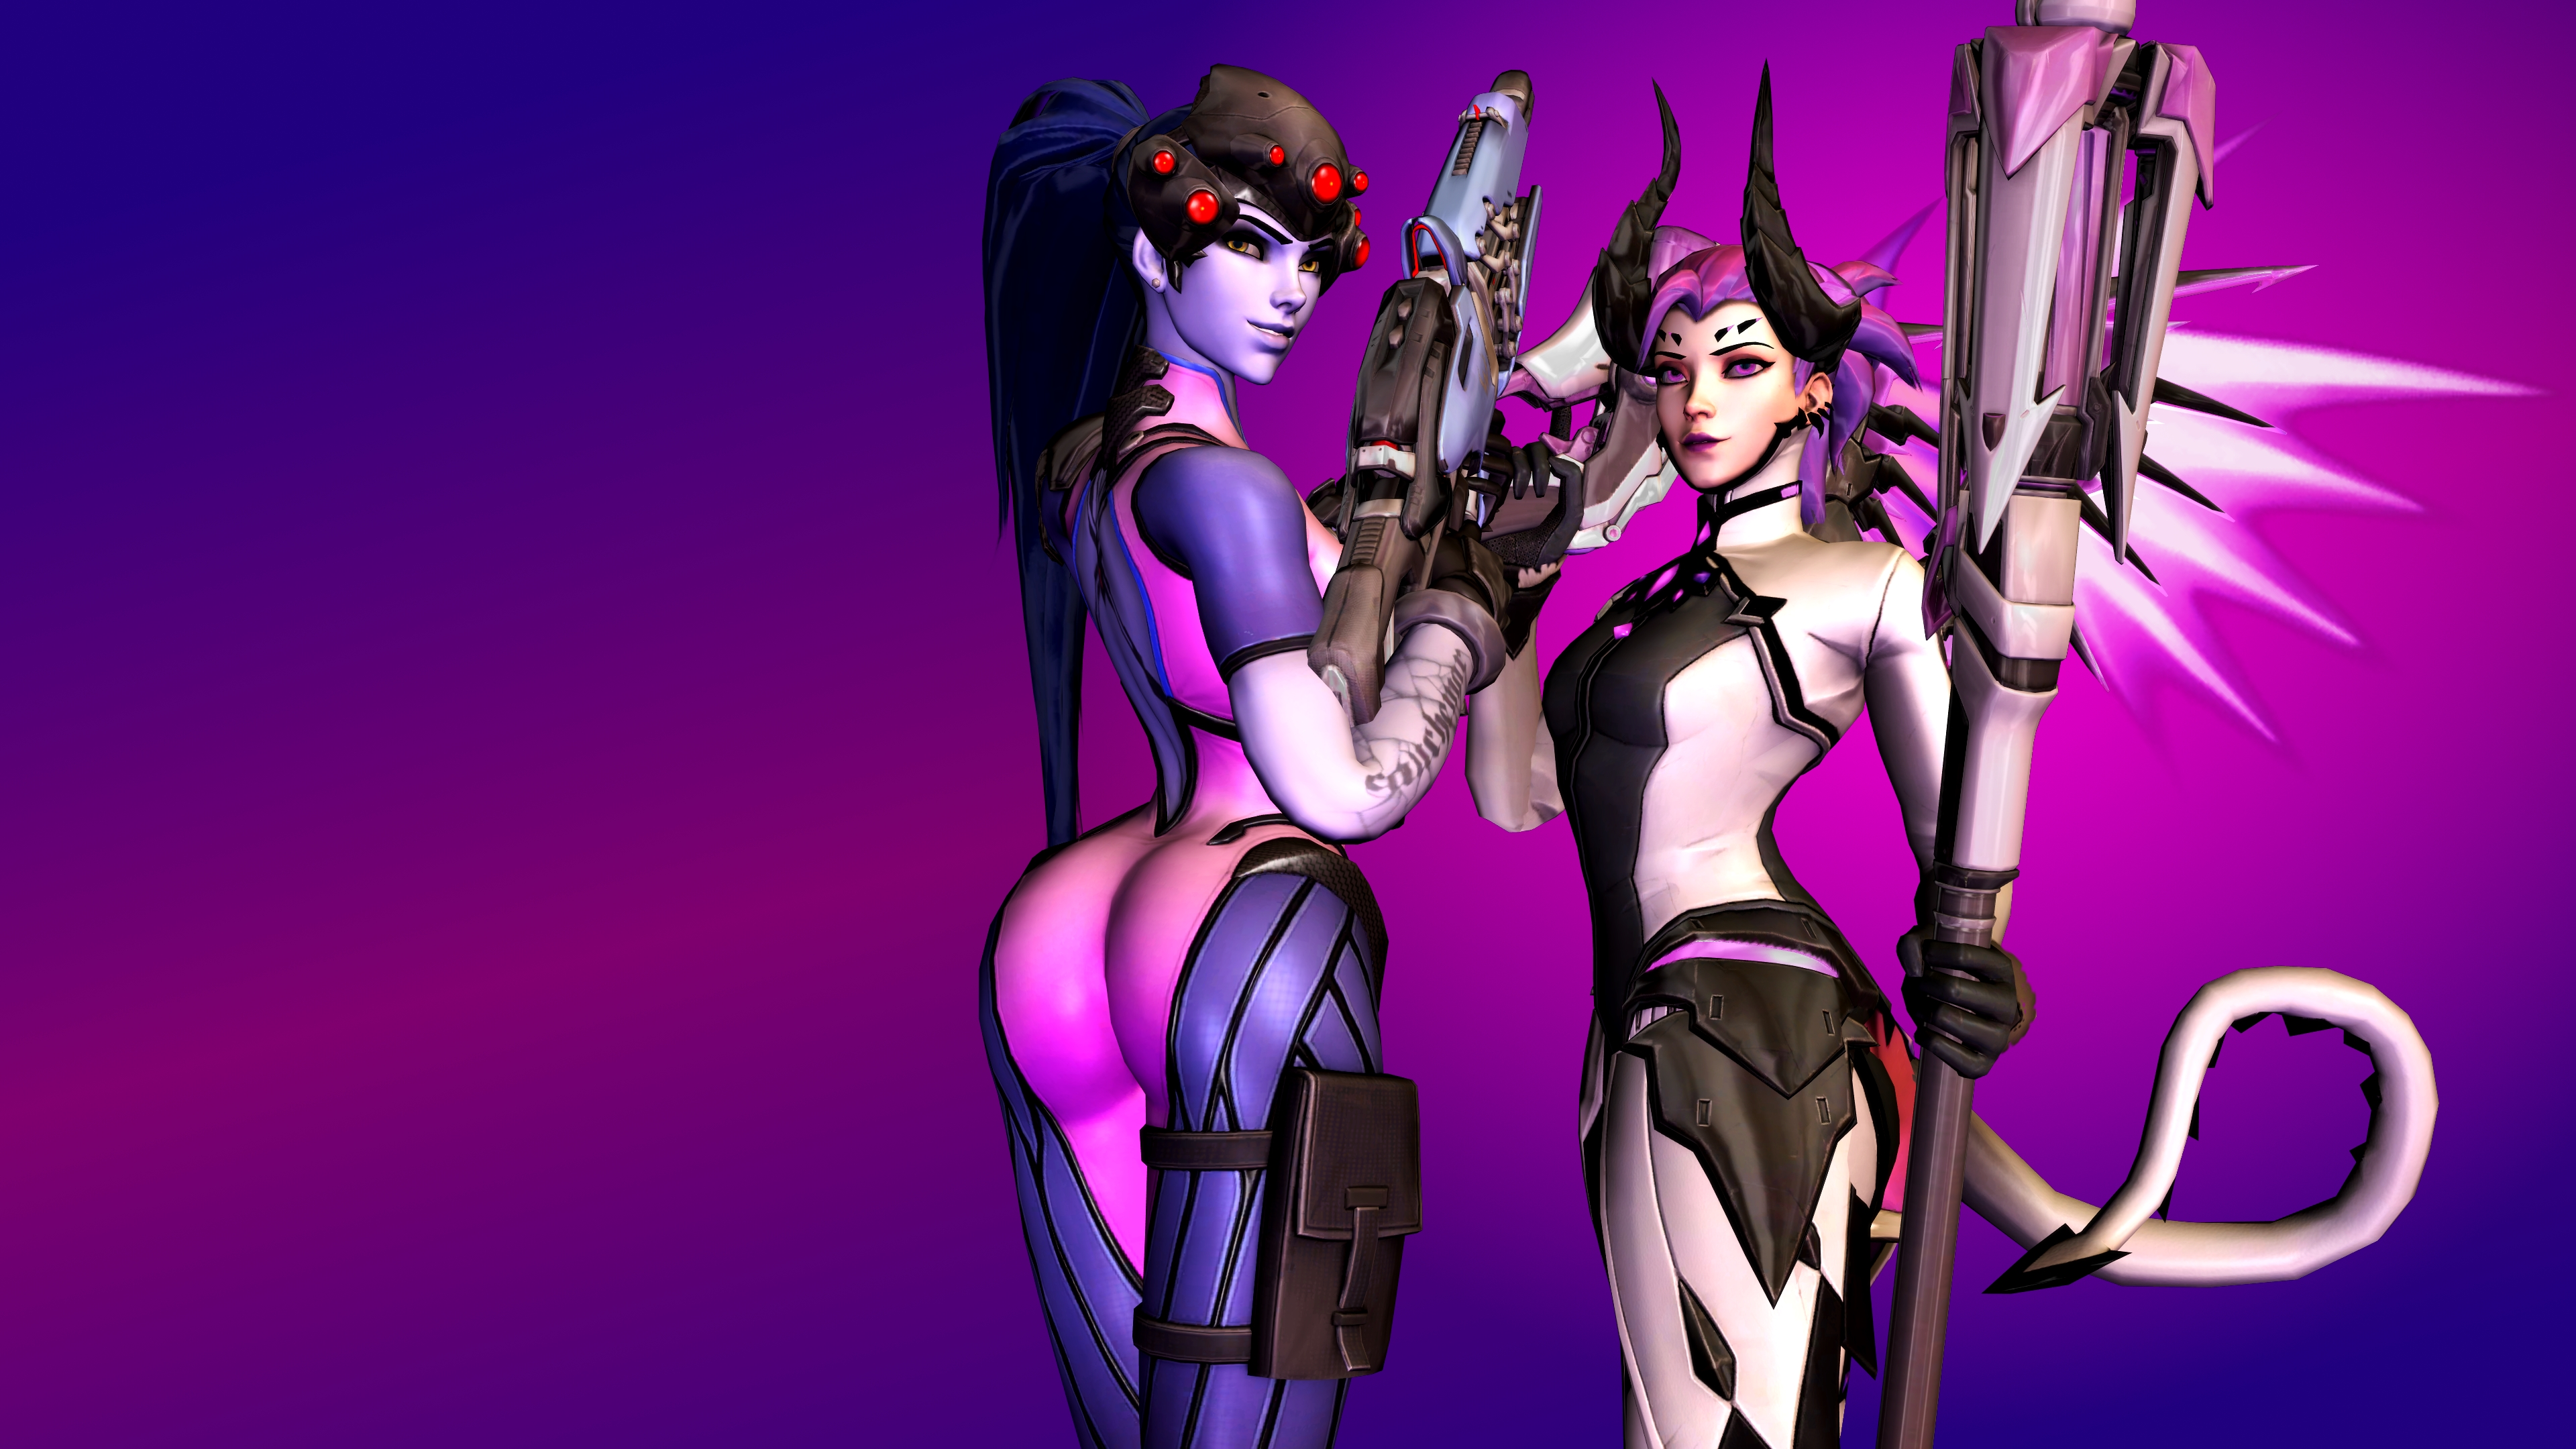 Overwatch (5 - Widowmaker and Mercy) by AdeptusInfinitus